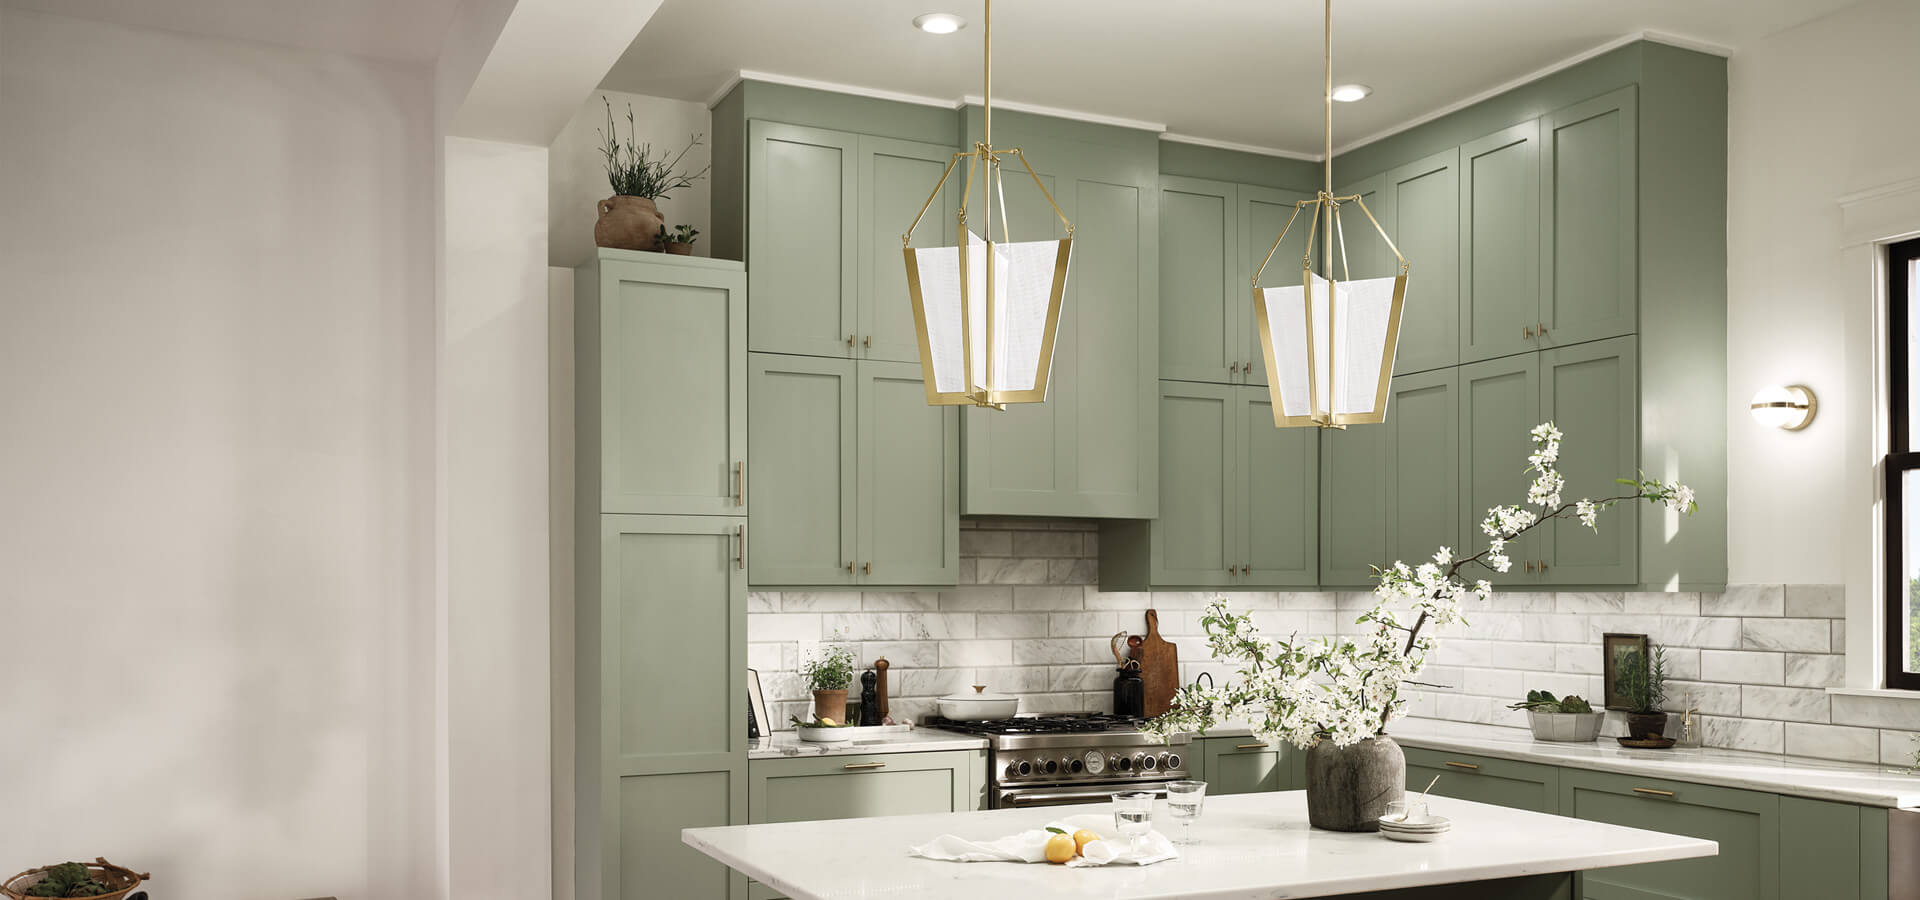 Kichler Lighting Pendant Ceiling Landscape Lights More Kichler Lighting